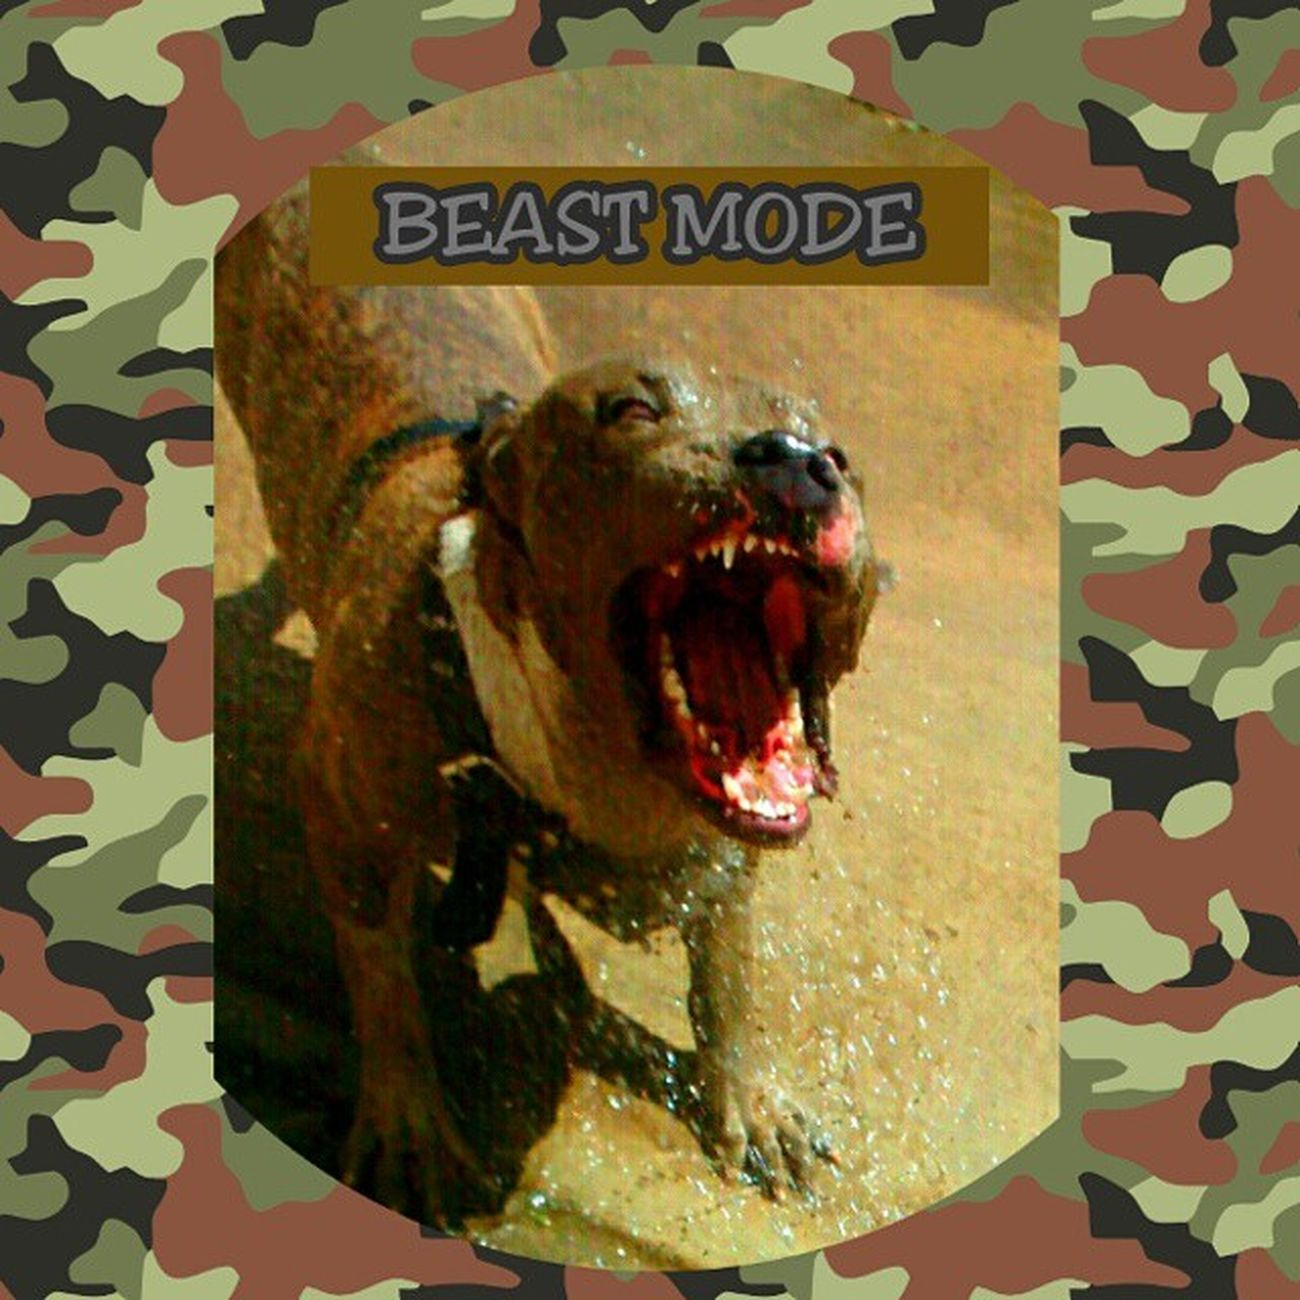 The PitBull much like our Troops are simply misunderstood...They do what they are trained to do on command. Its the General, The Boss, The Commander, That needs to be Responsible for proper actions their soldiers partake in. Pitbulls are the most loyal,loving and caring breed I've ever come across. They will take their very last breath fighting for you...their love is unconditional and everlasting.Support our PitBulls and Troops!!! ForOurUSTroopsOnBeastMode Militarylife MILITARYLOVE Hoorah Army Navy Marines Airforce Coastguard MilitentWeAre1 Delta RangerUp Specialforces LoveForAllWhoServed LoveForAllWhoAreServing LoveForTheFallen LoveForThePOWs LoveForTheirSacrifice LoveForTheirFamiliesSacrifice